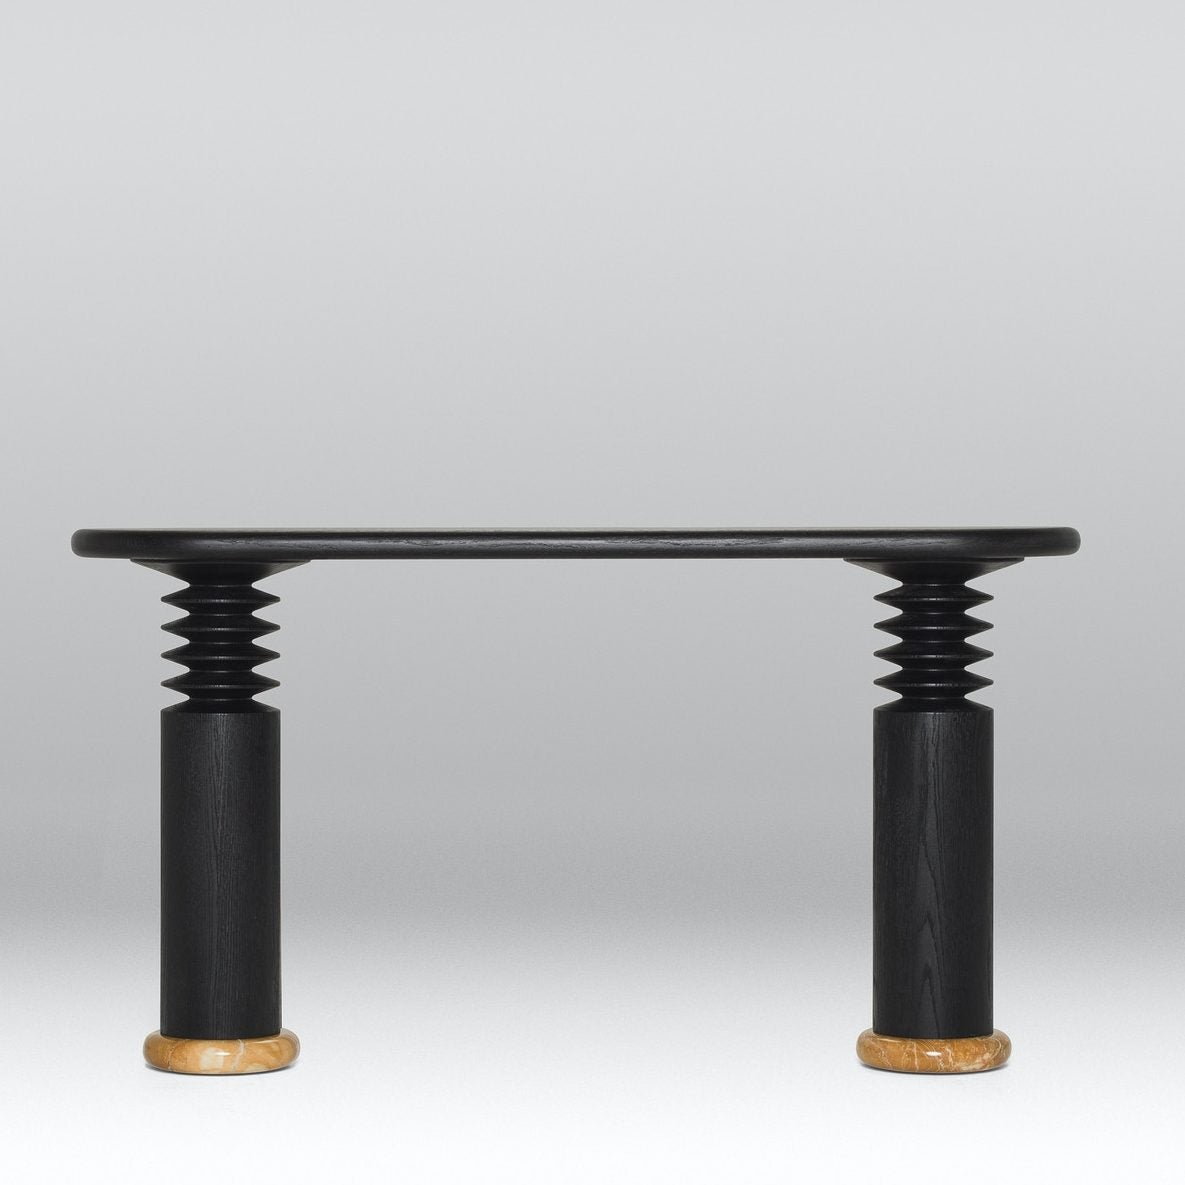 HEMLOCK_CONSOLE_PRODUCT_SHOT_FRONT